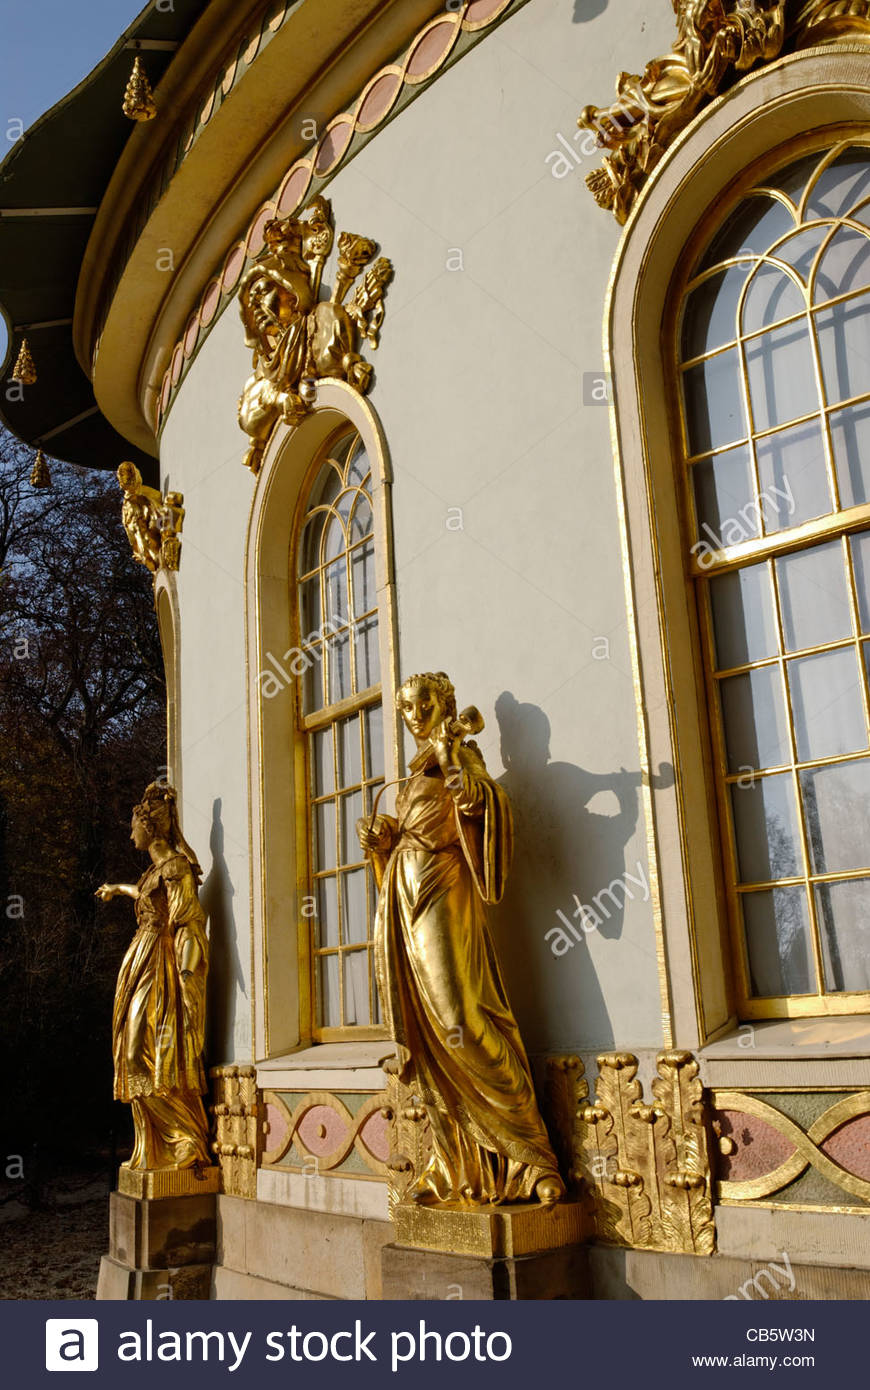 golden statues of female musicans at The Chinese House, a garden pavilion in Sanssouci Park in Potsdam - Stock Image